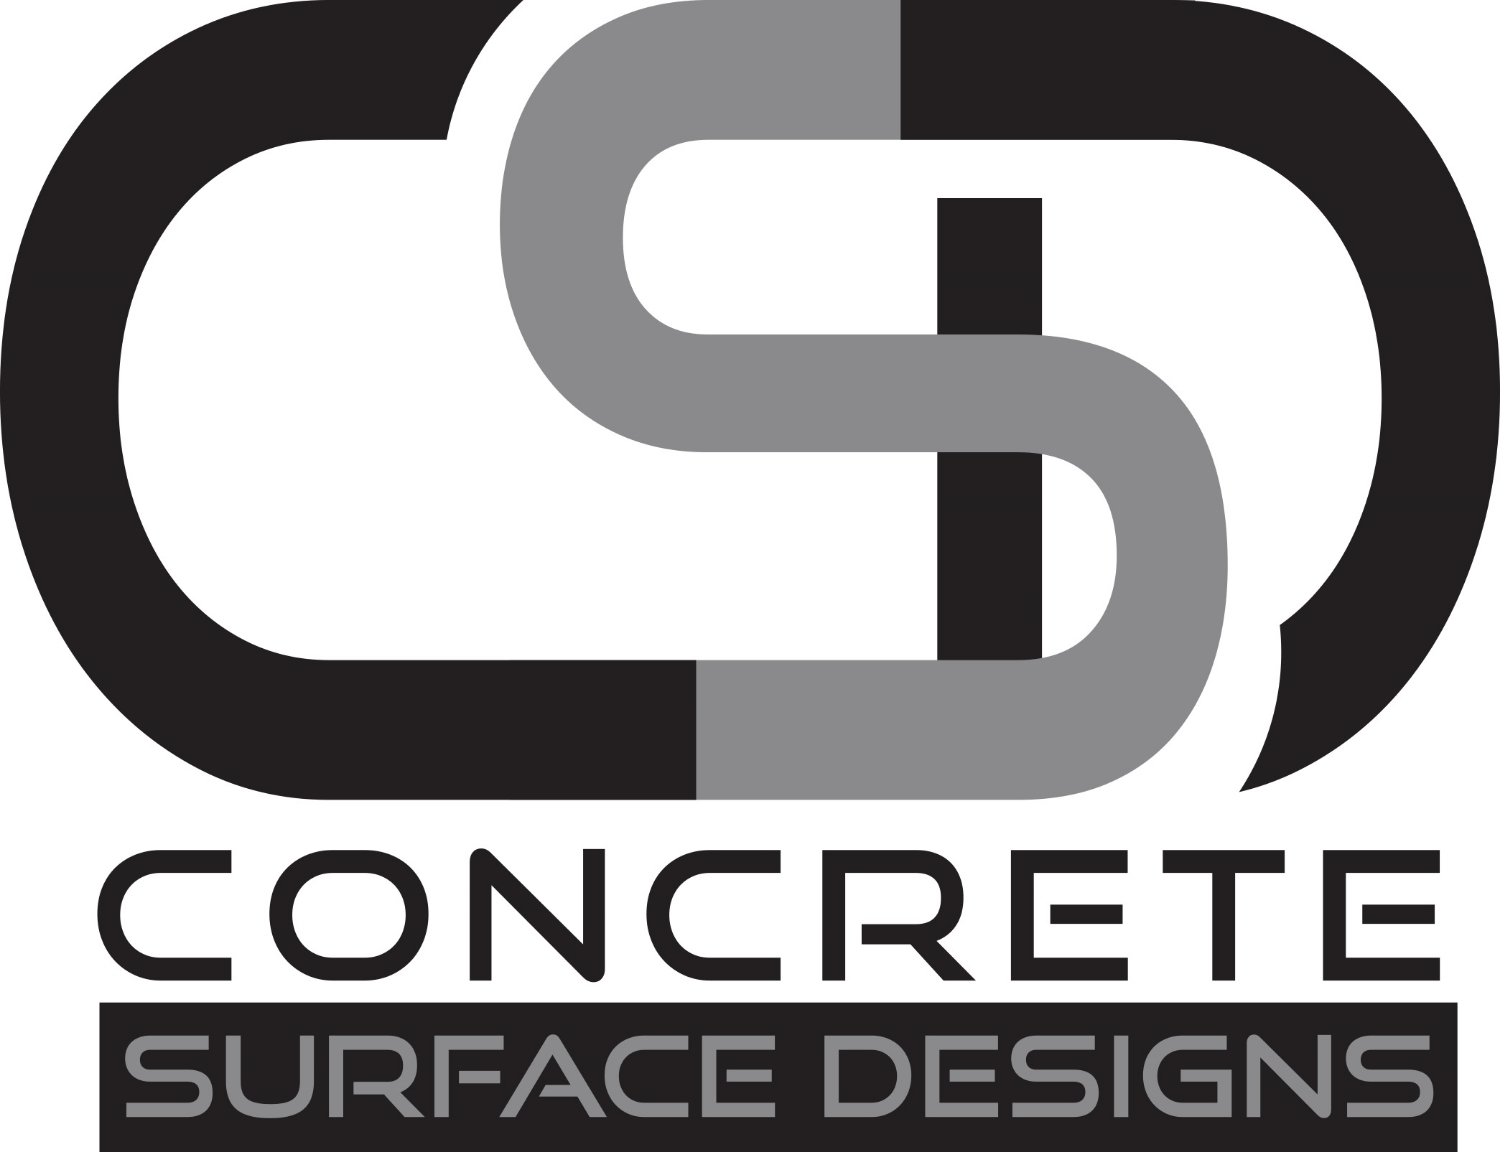 Concrete Surface Designs